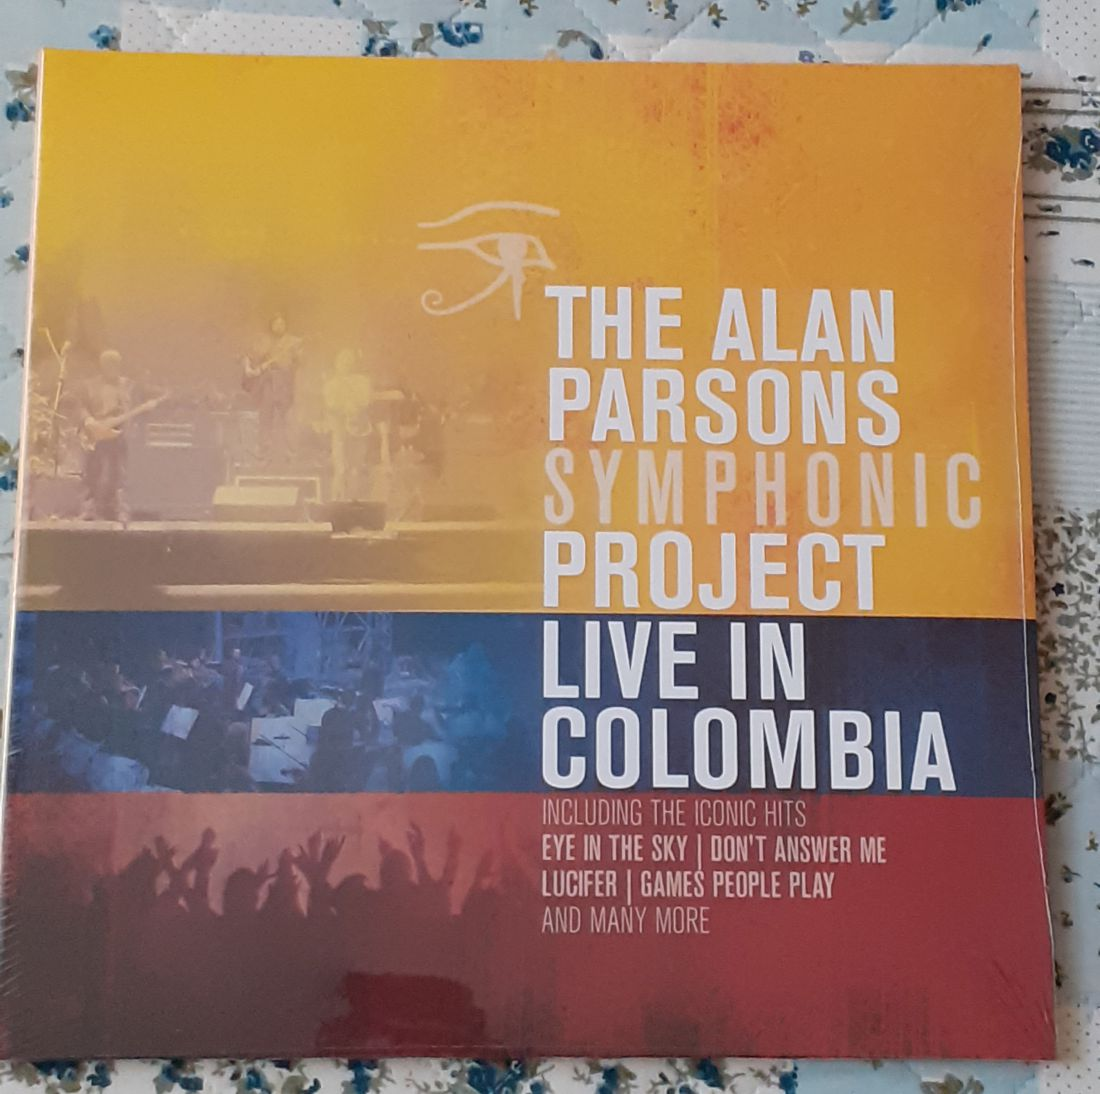 The Alan Parsons Project: Symphonic Live in Colombia 3 LP